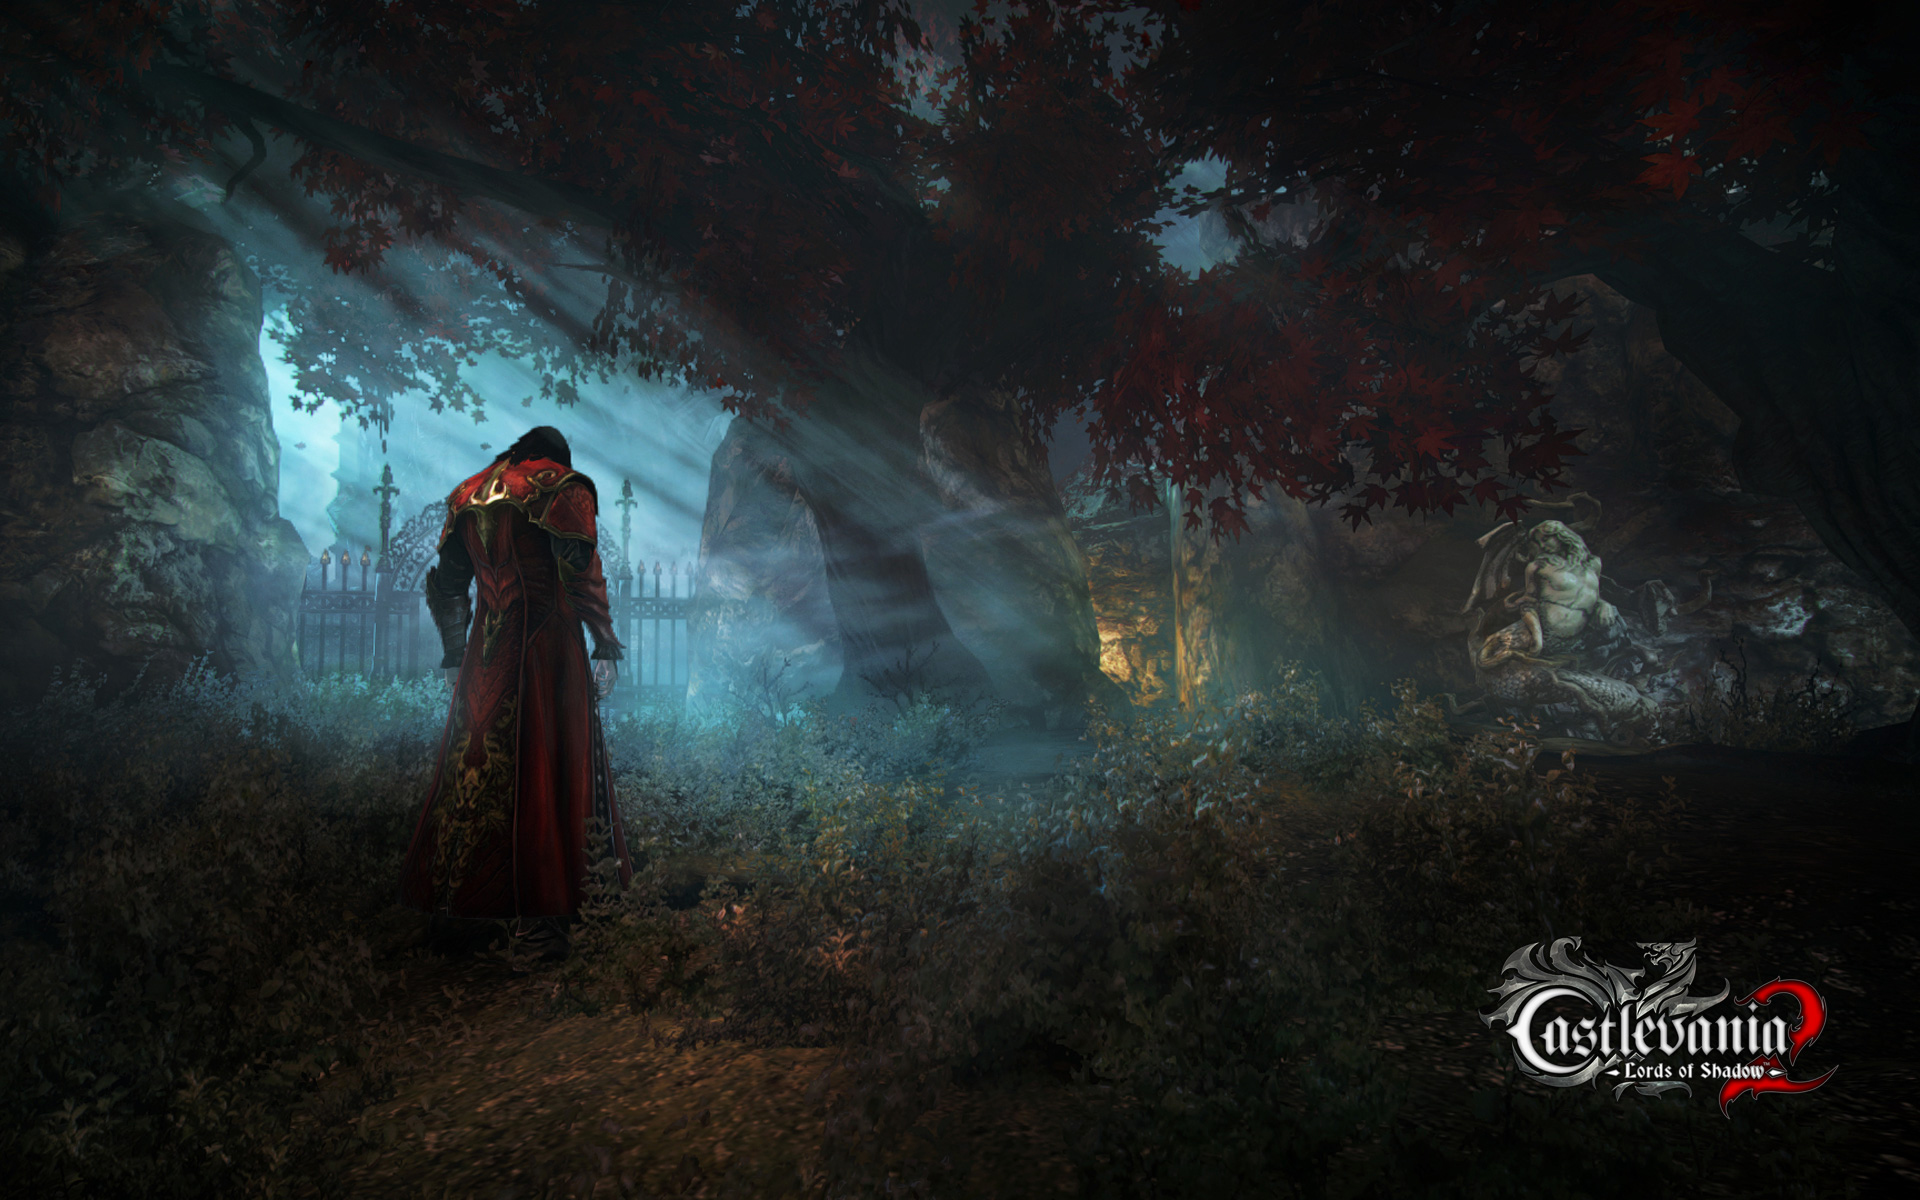 Free Download Castlevania Lords Of Shadow 2 Hd Wallpaper 1 2